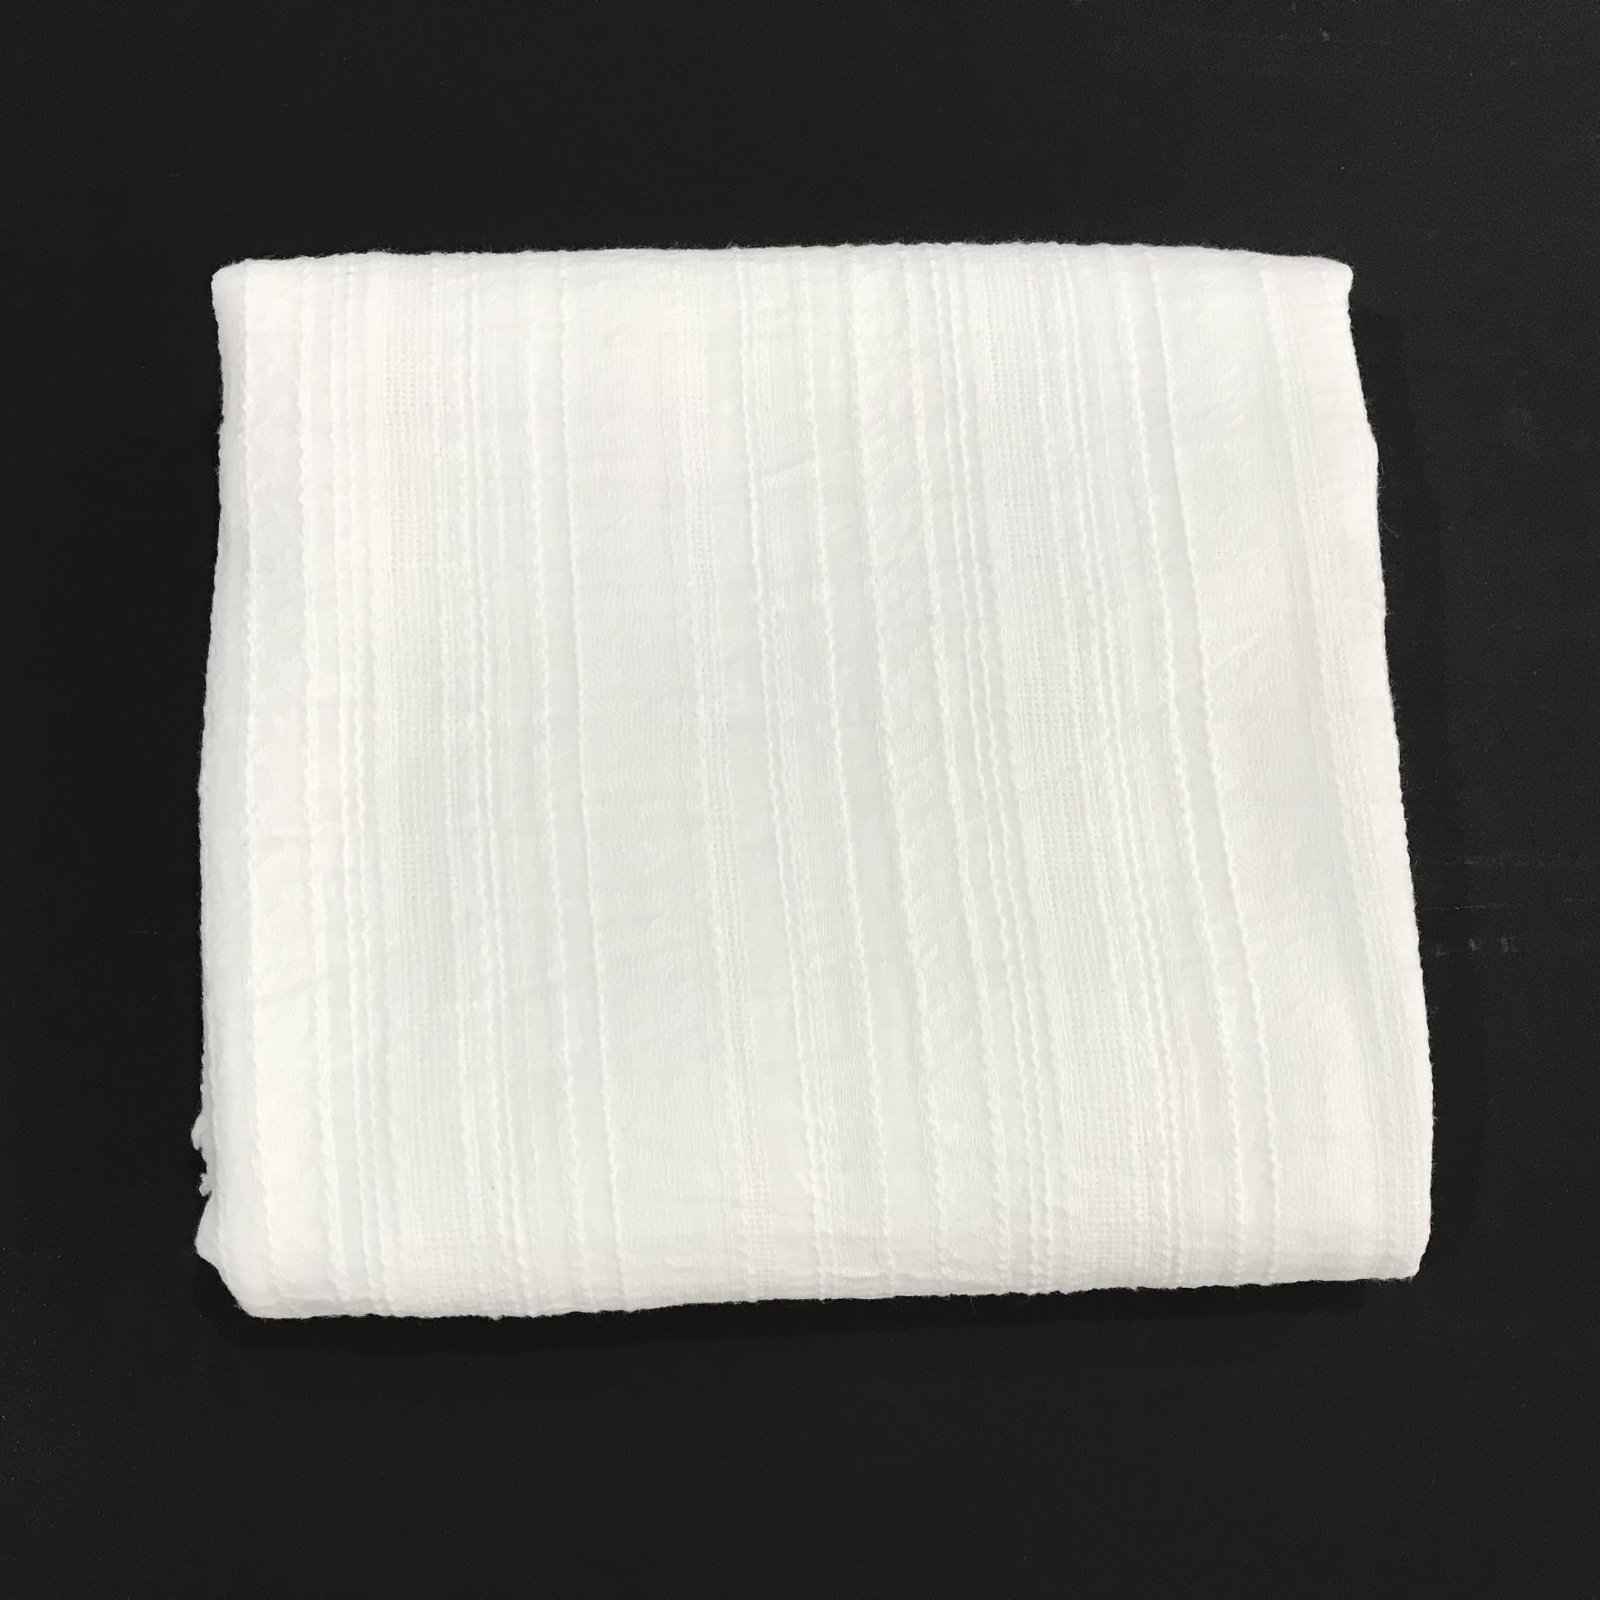 1 7/8 yards - Cotton - Gauze and Embroidery - White